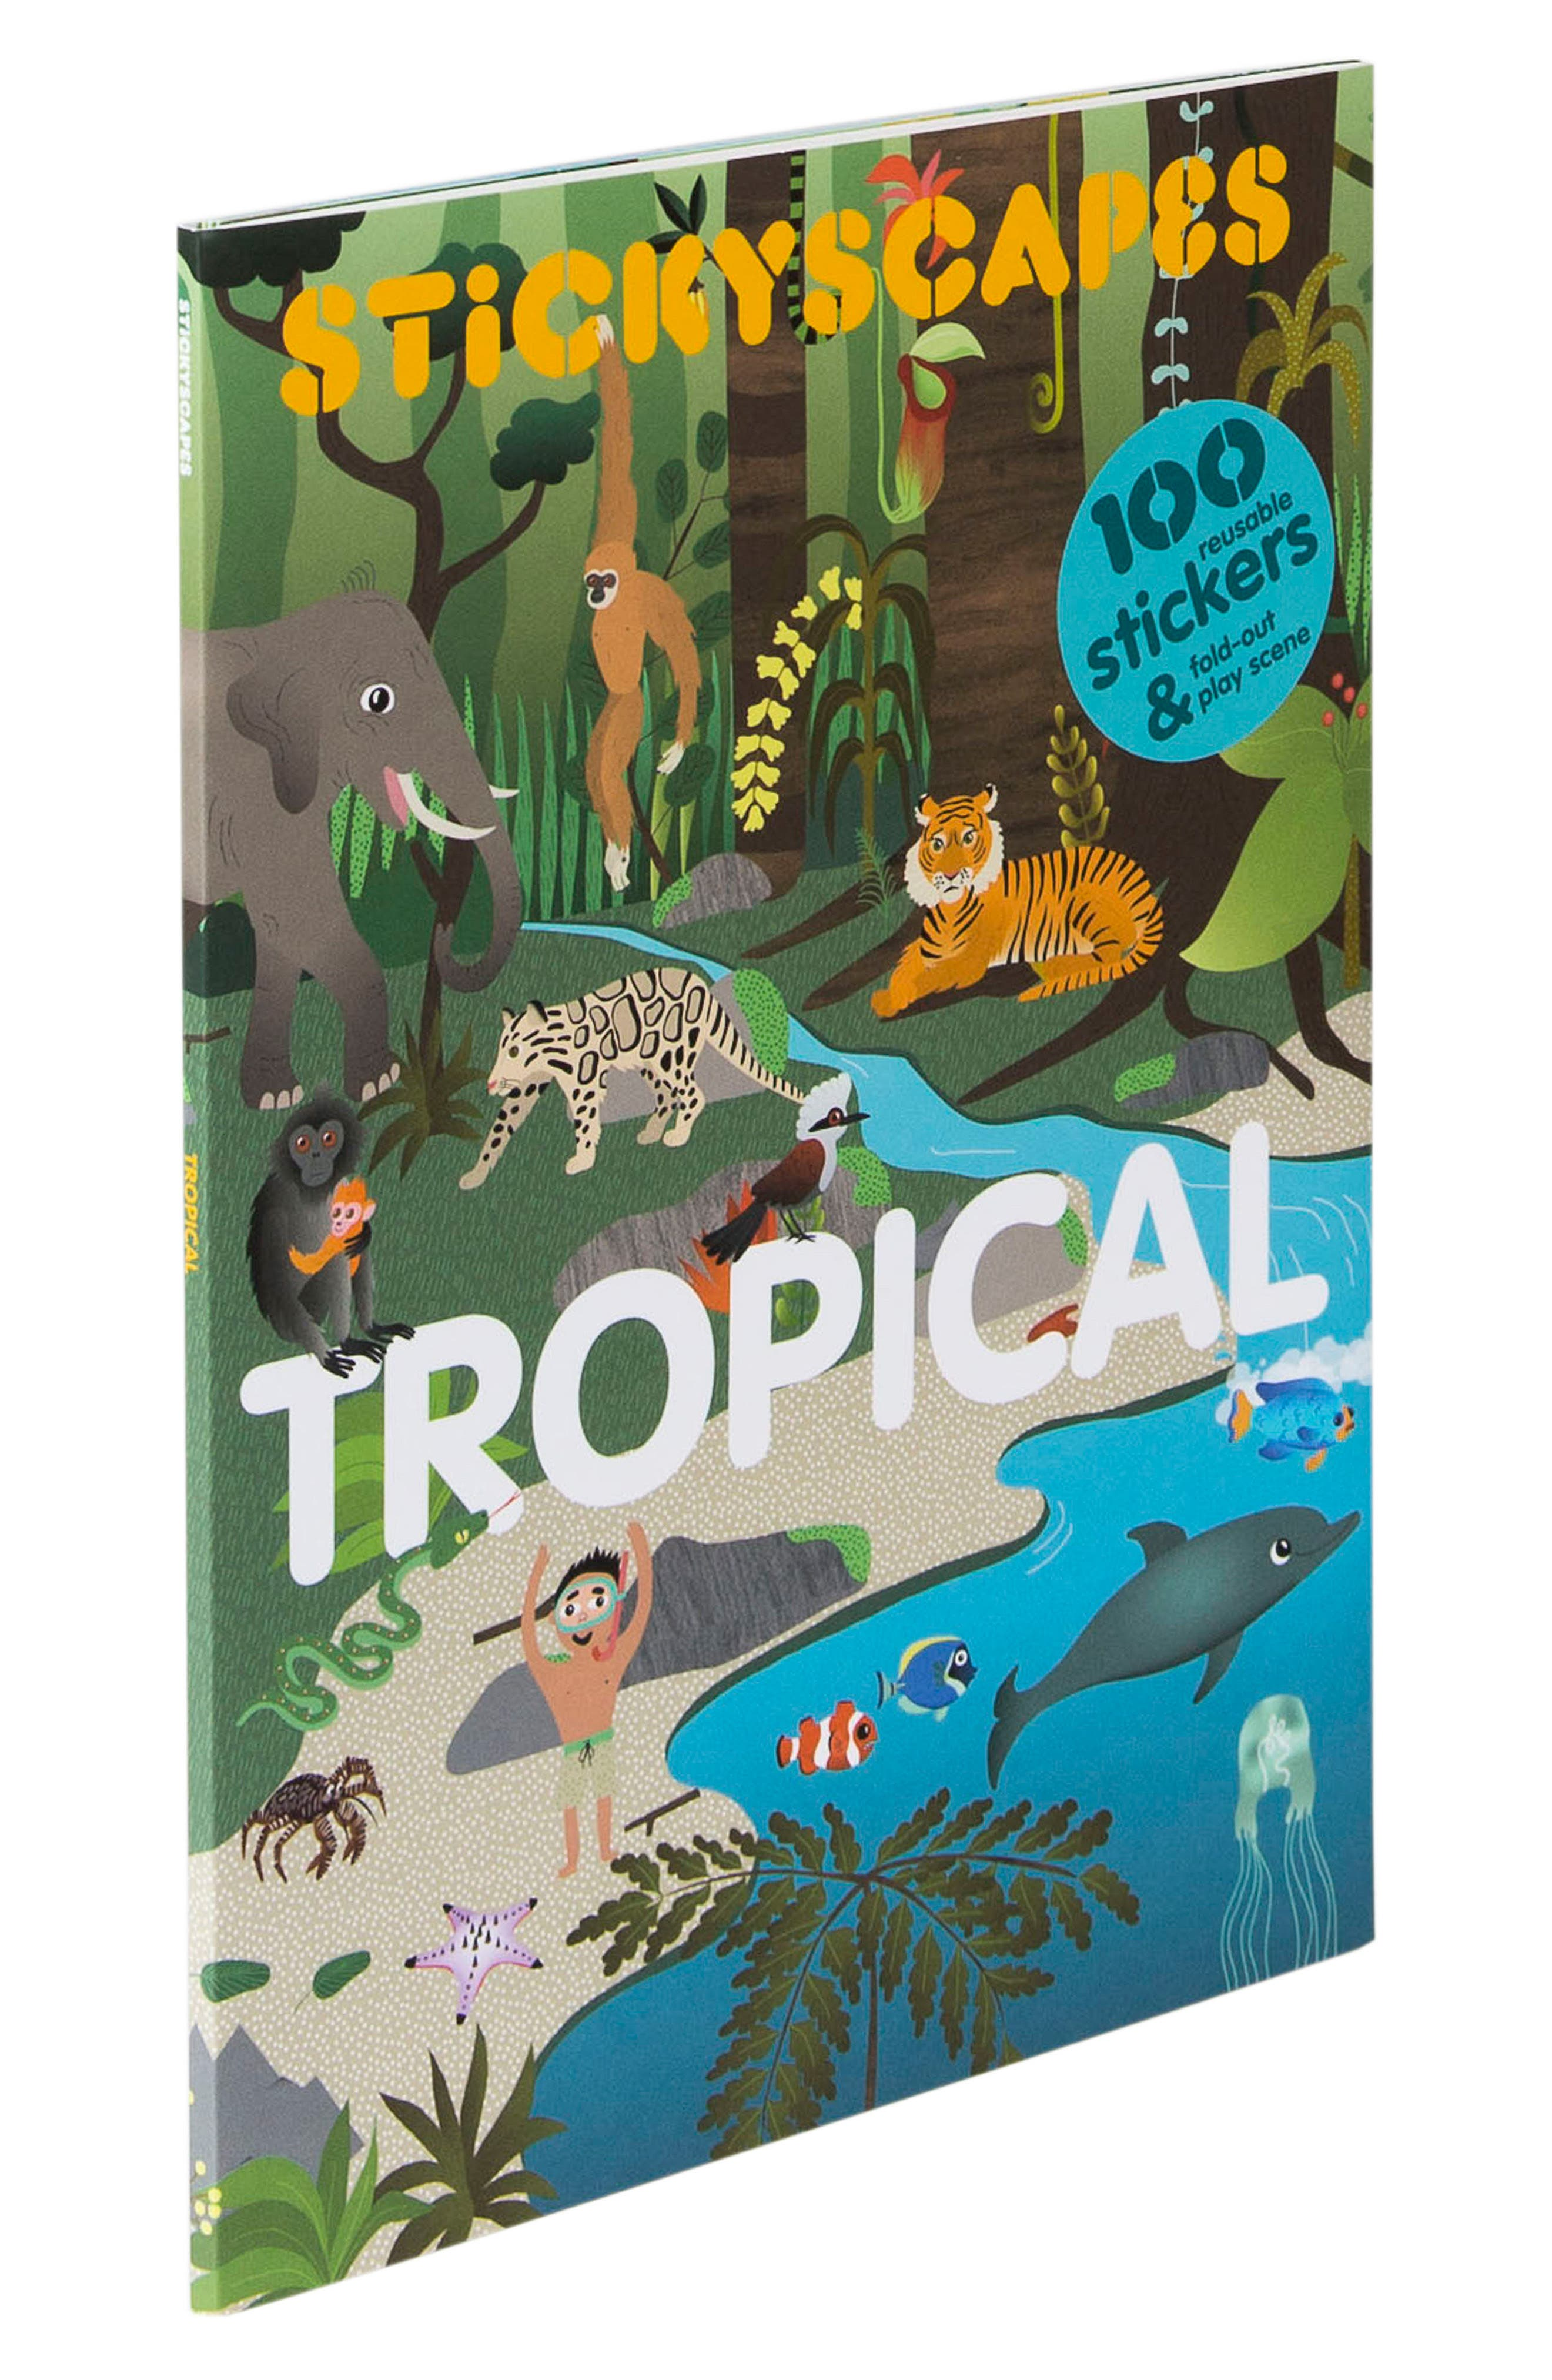 Alternate Image 1 Selected - 'Stickyscapes: Tropical' Adventure Activity Sticker Book